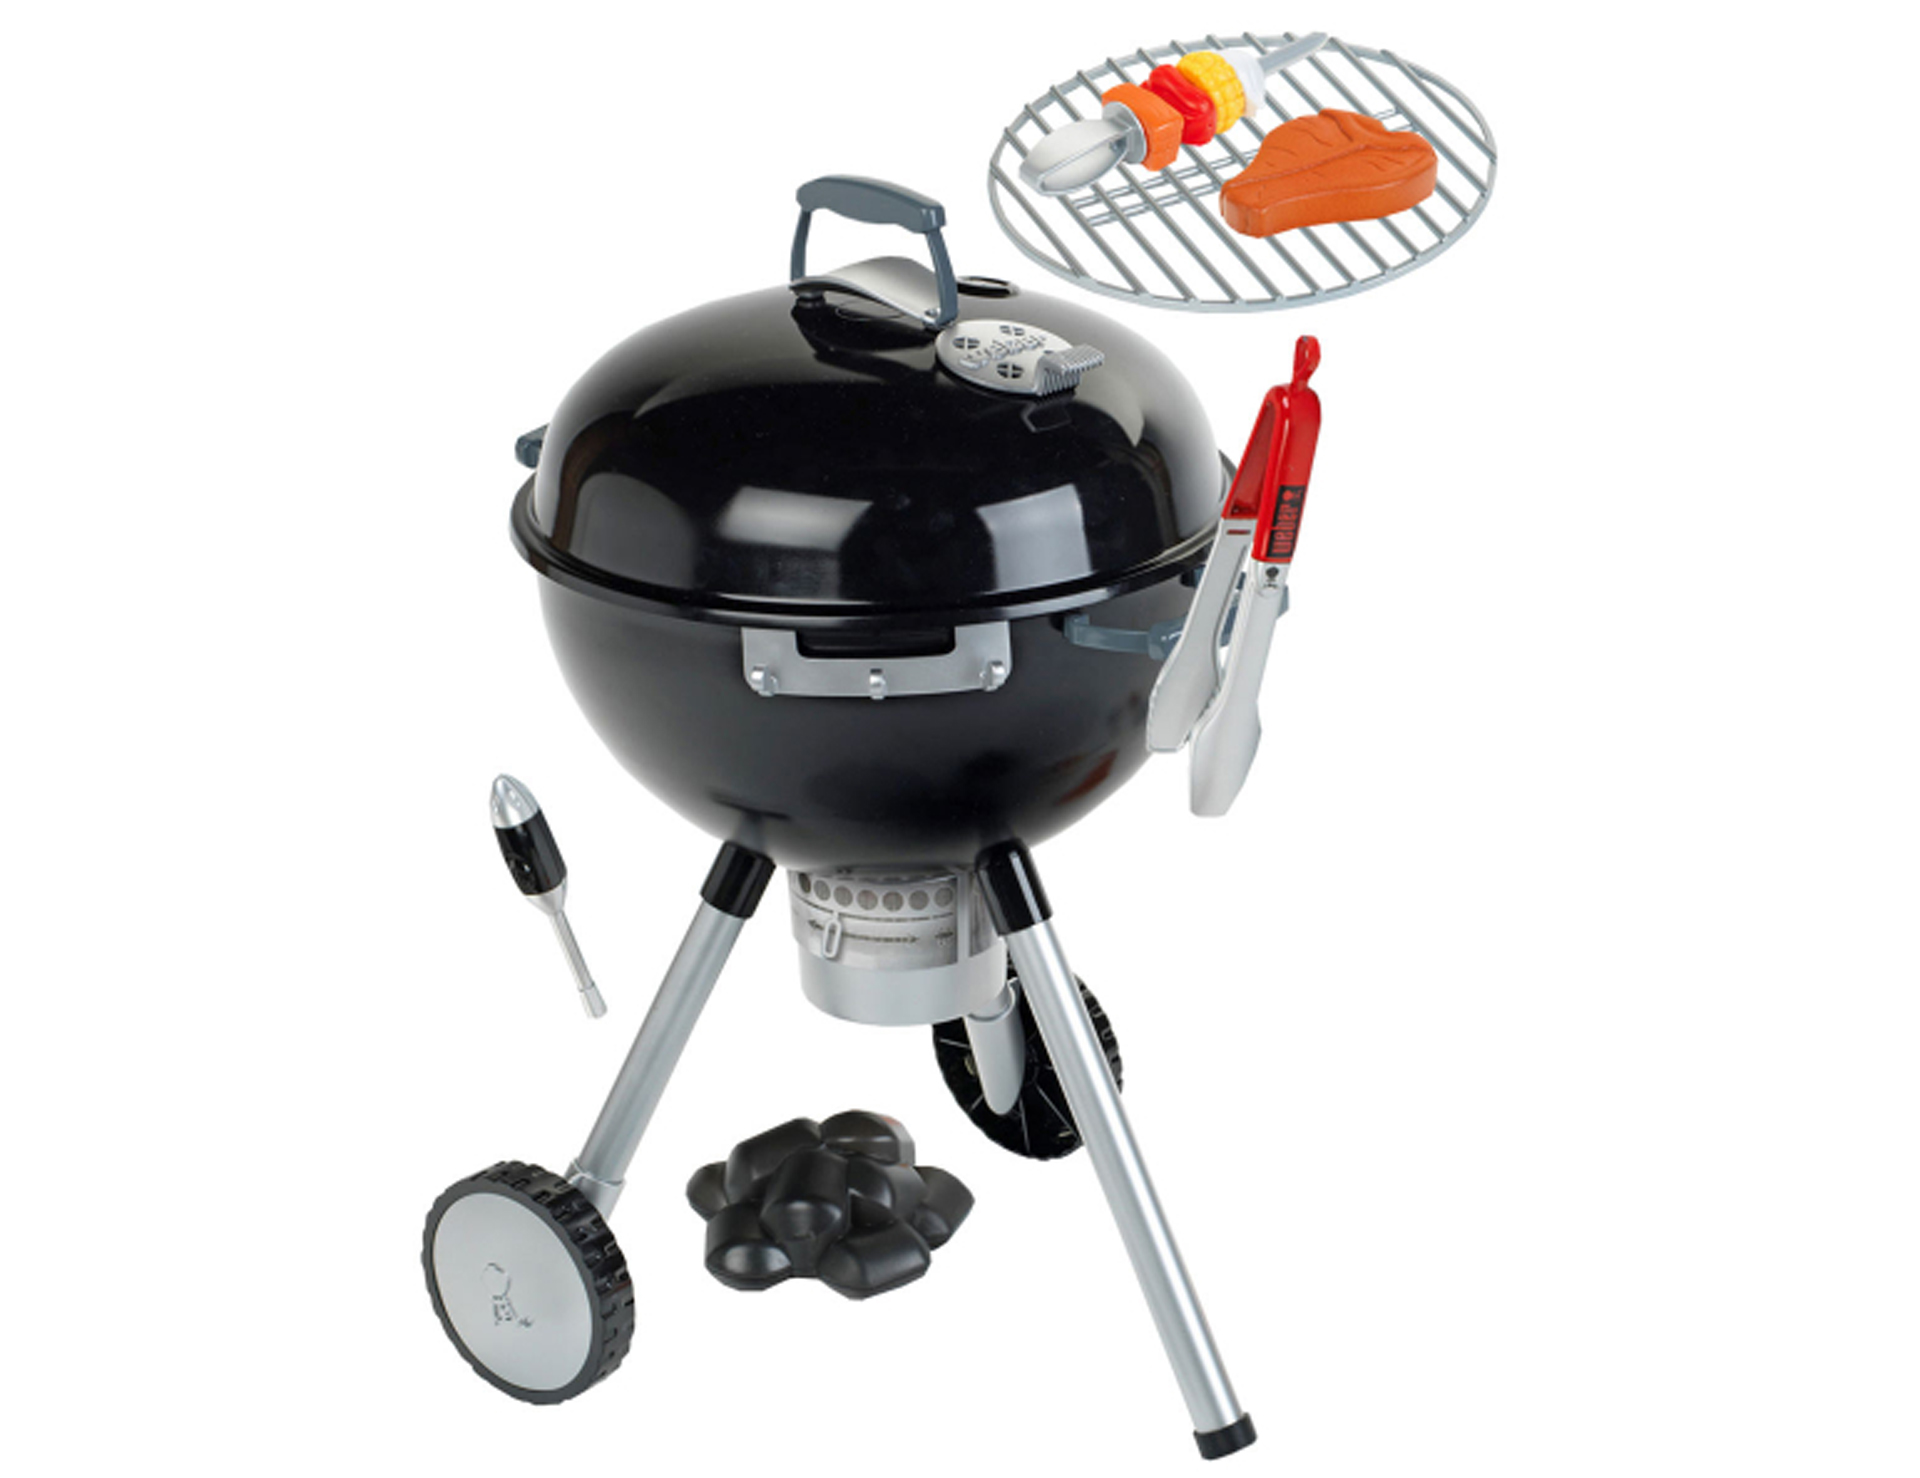 Weber Grill One Touch Weber Grill Boule One Touch Skymania Ch